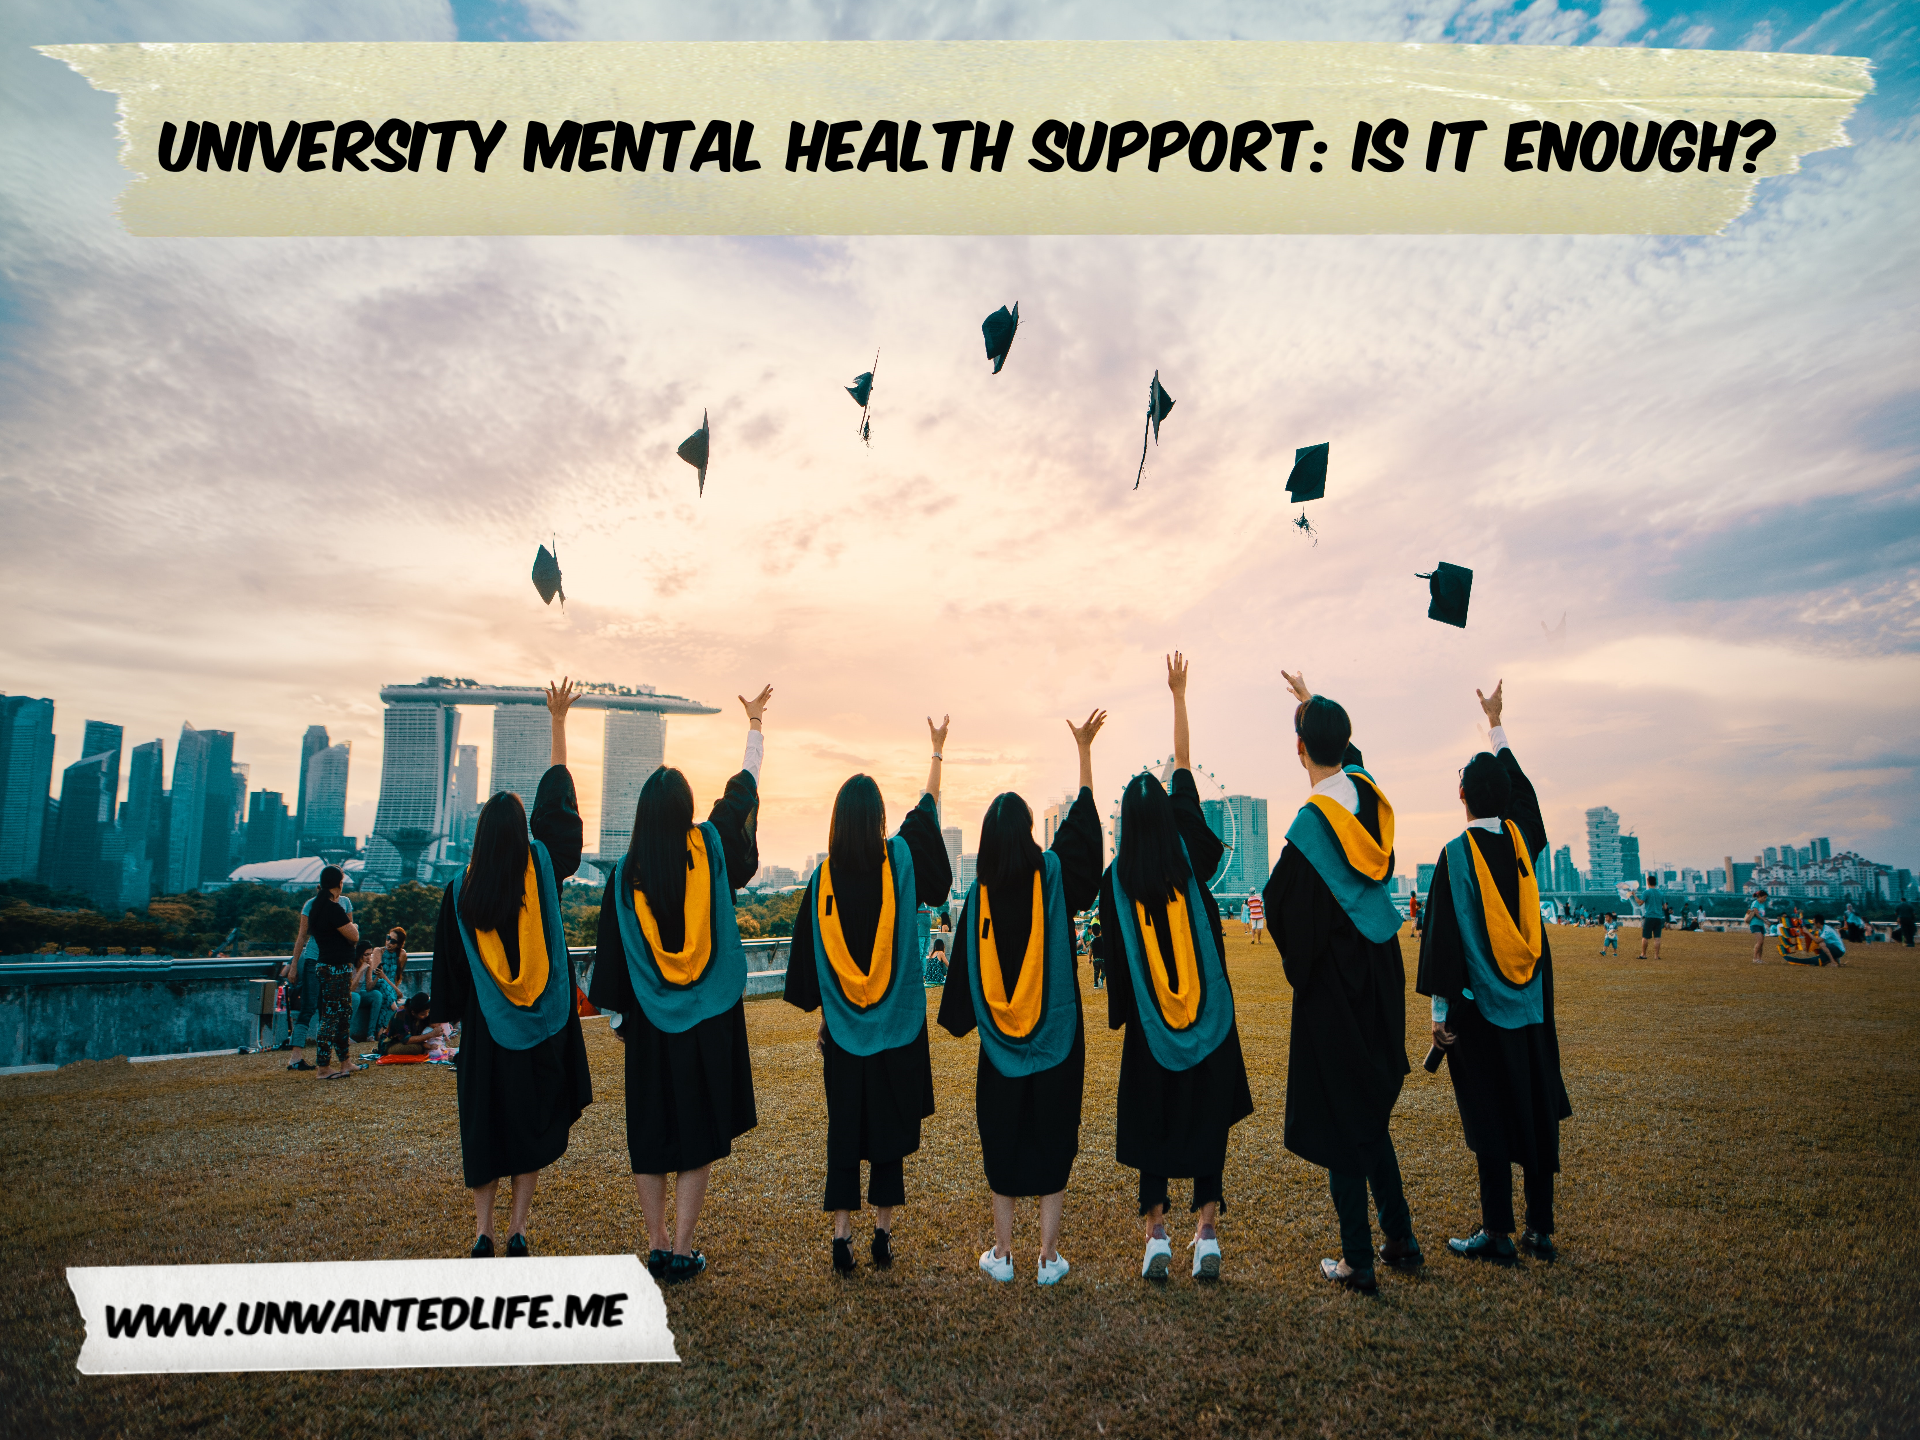 A photo of graduating Asian university students throwing their mortarboards in the air to represent - University Mental Health Support: Is it Enough?